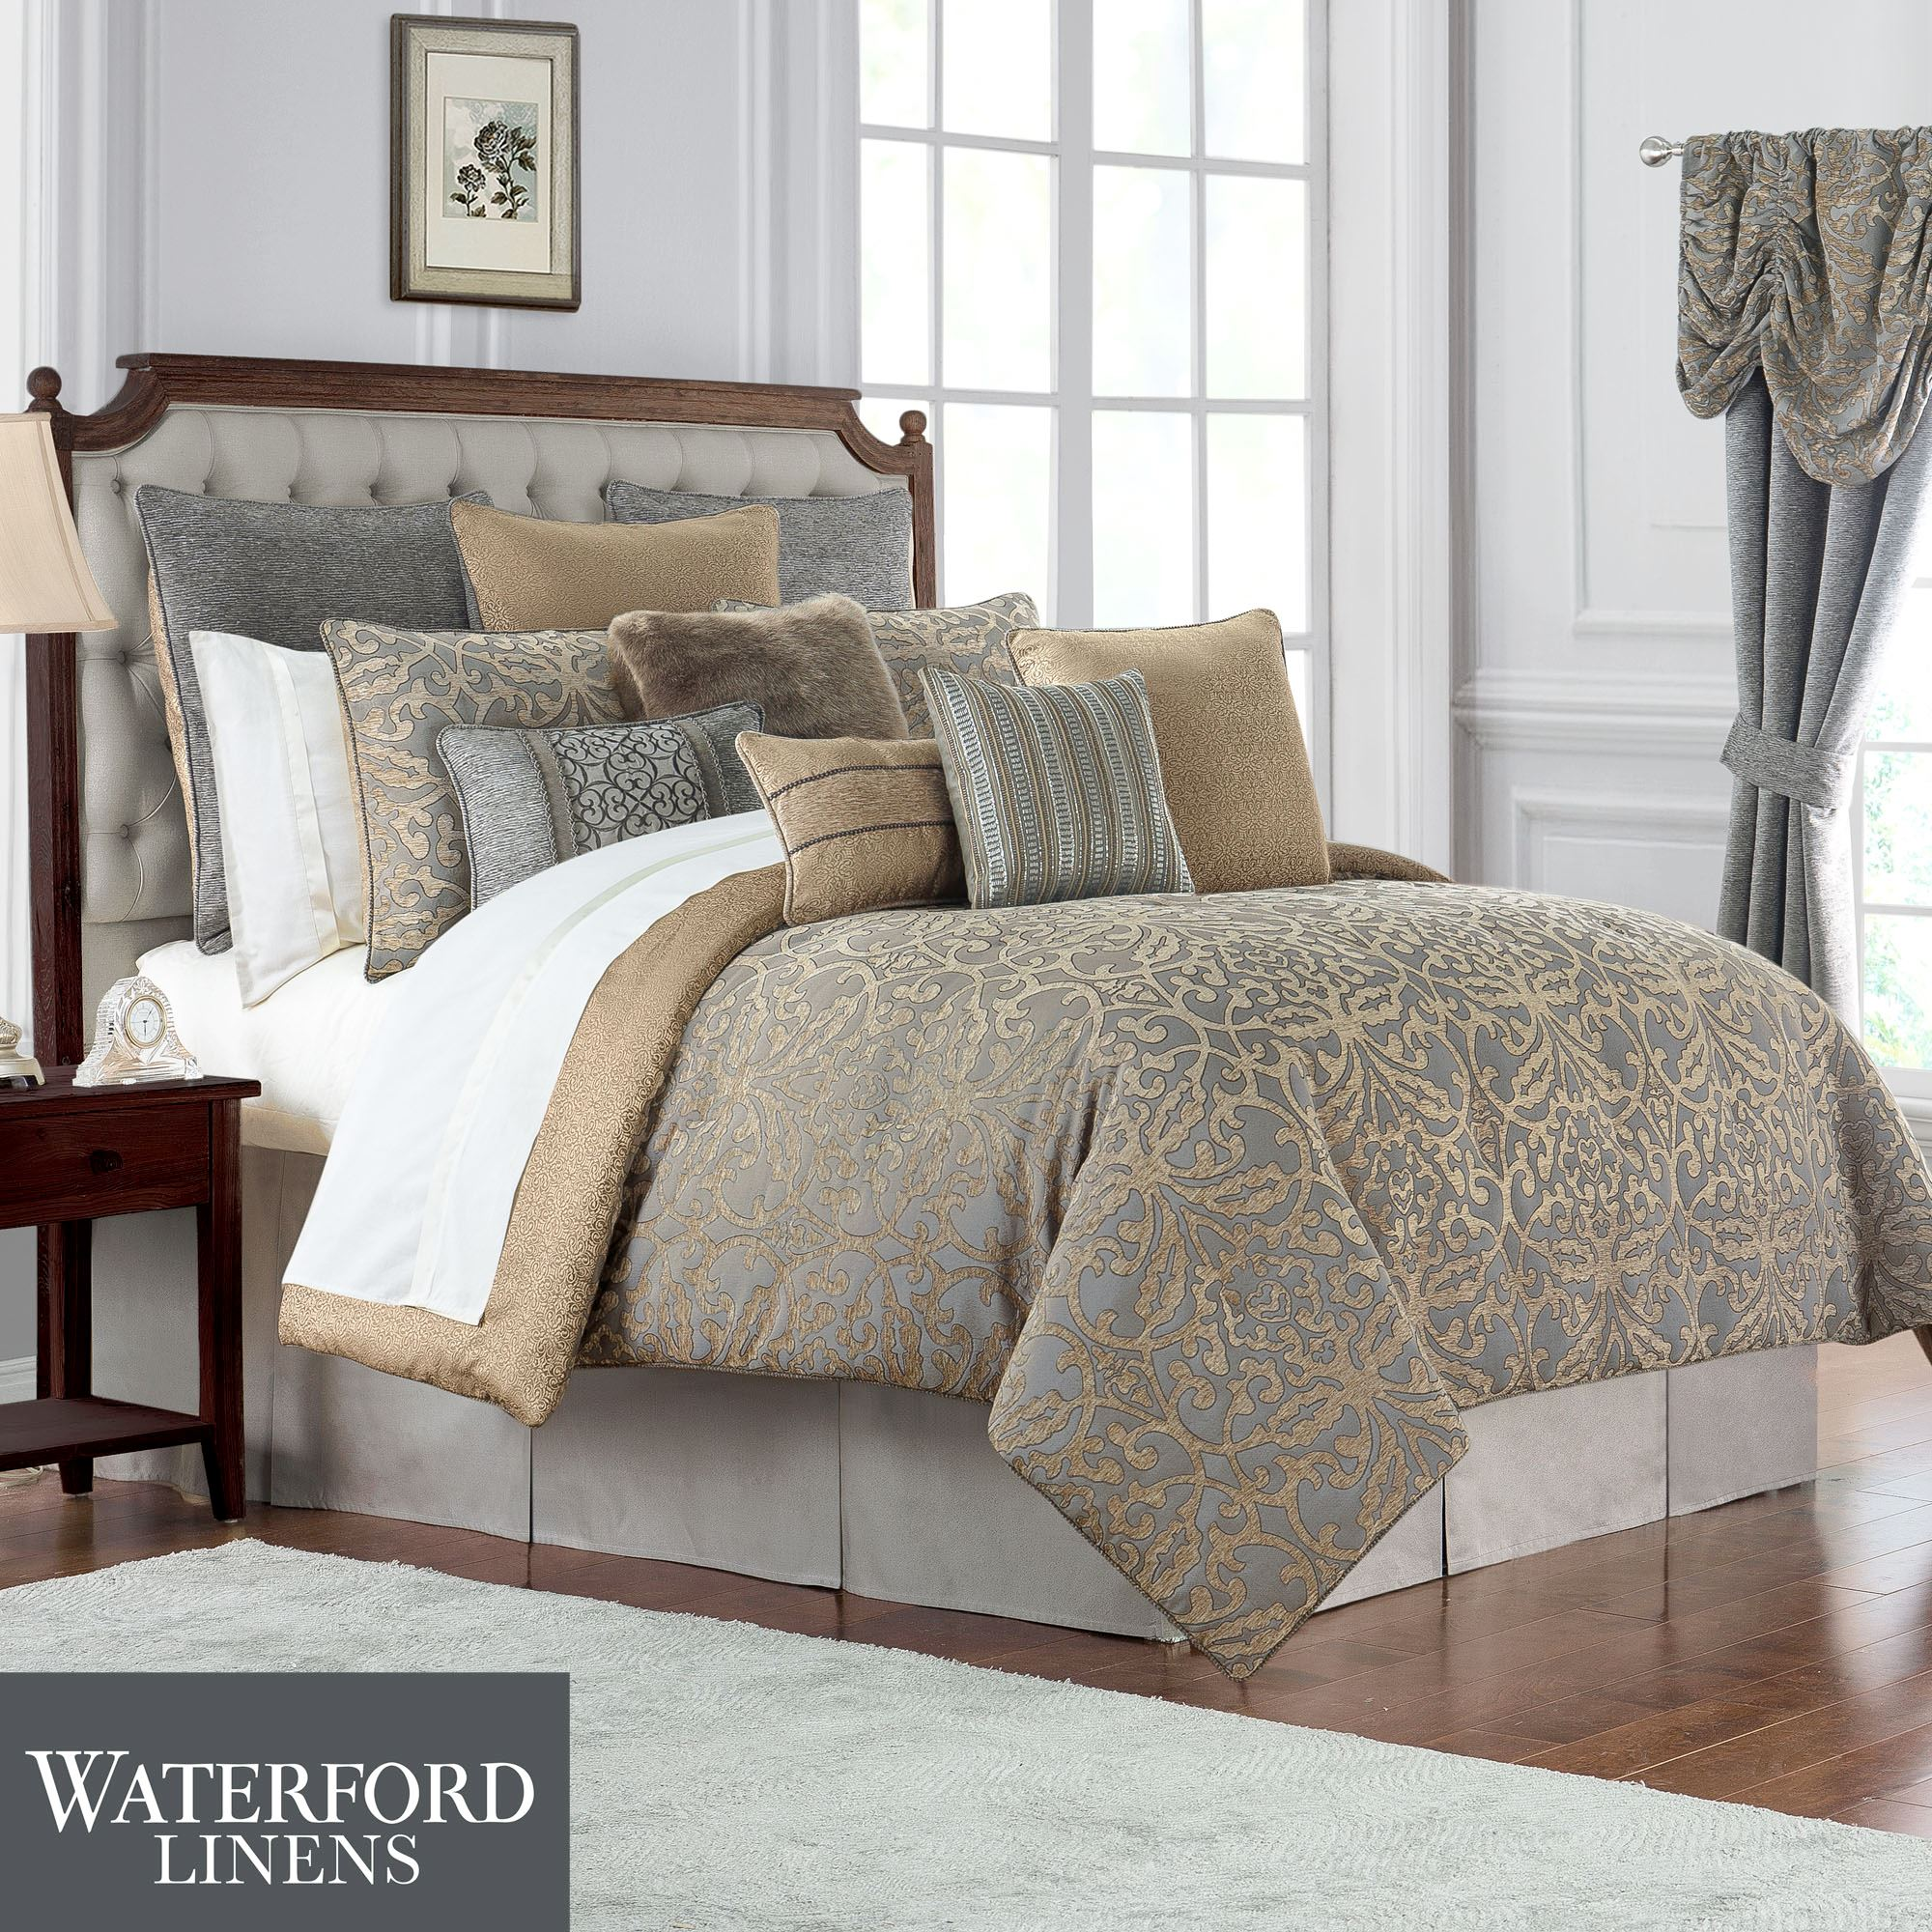 Carrick Reversible Gold And Gray Damask Comforter Bedding By Waterford Linens